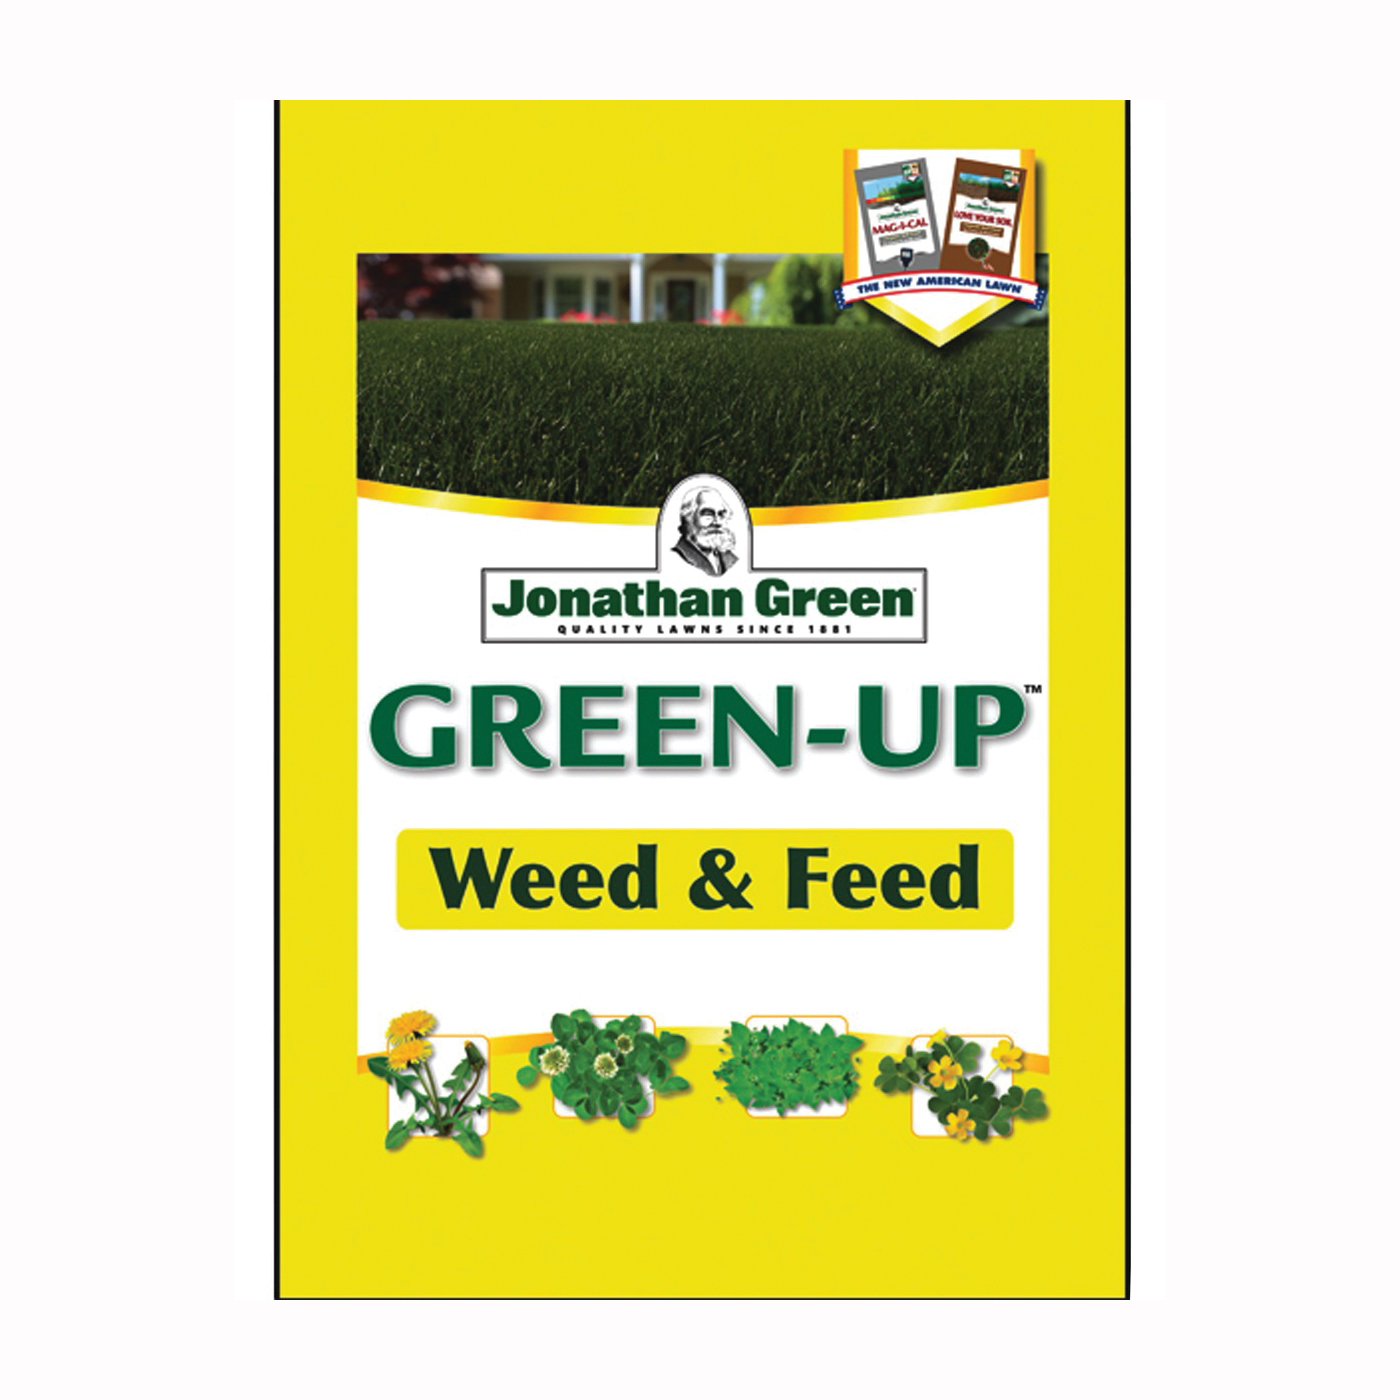 Picture of Jonathan Green Green-Up 12345 Weed and Feed Lawn Fertilizer, Granular, Ammonia, Sulphur, 45 lb Package, Bag